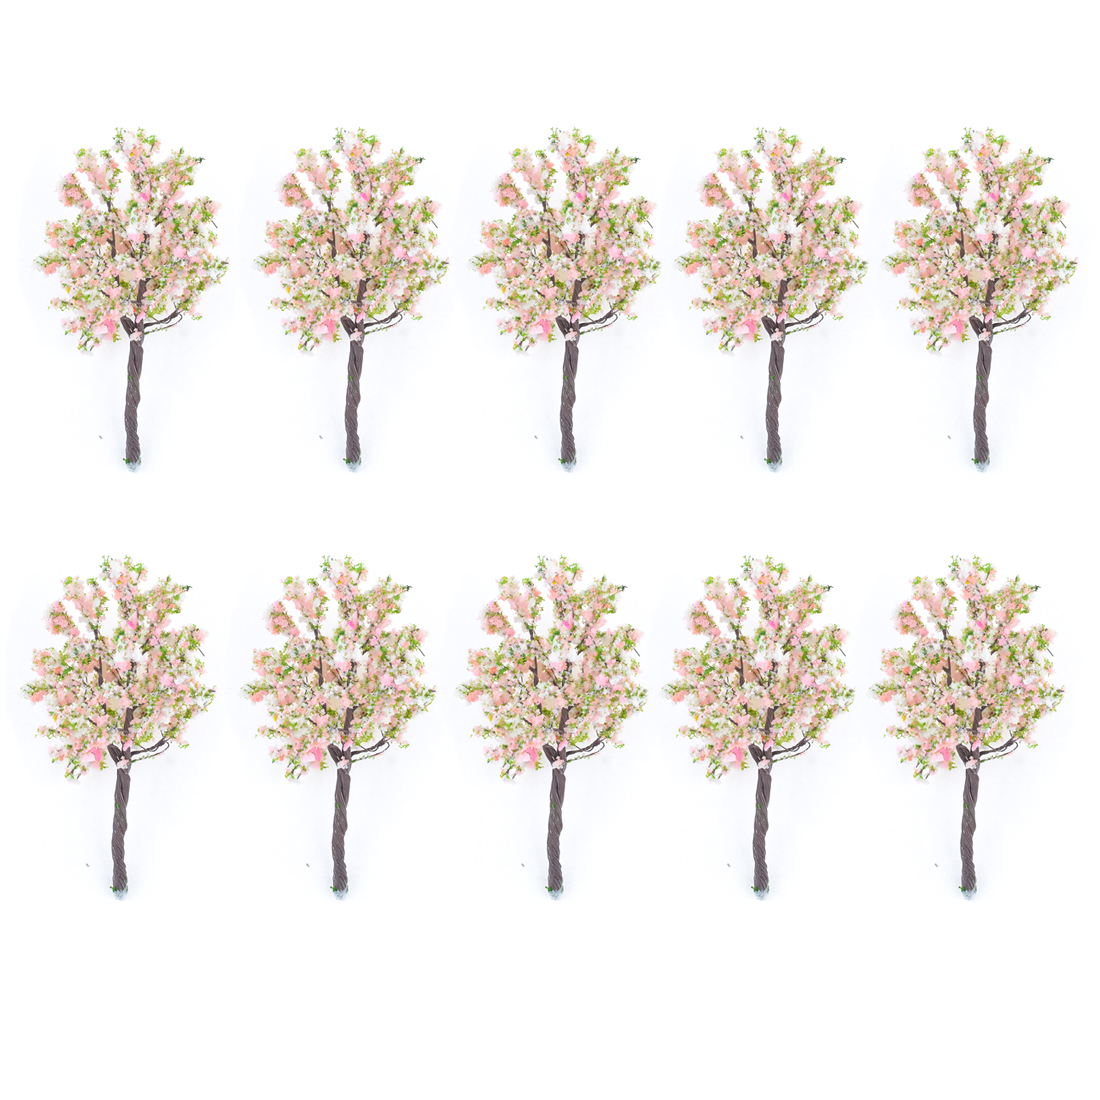 "10 Pcs Pink Green White Plastic Flower Trees Layout Scene 4.3"" High 1:75-100"